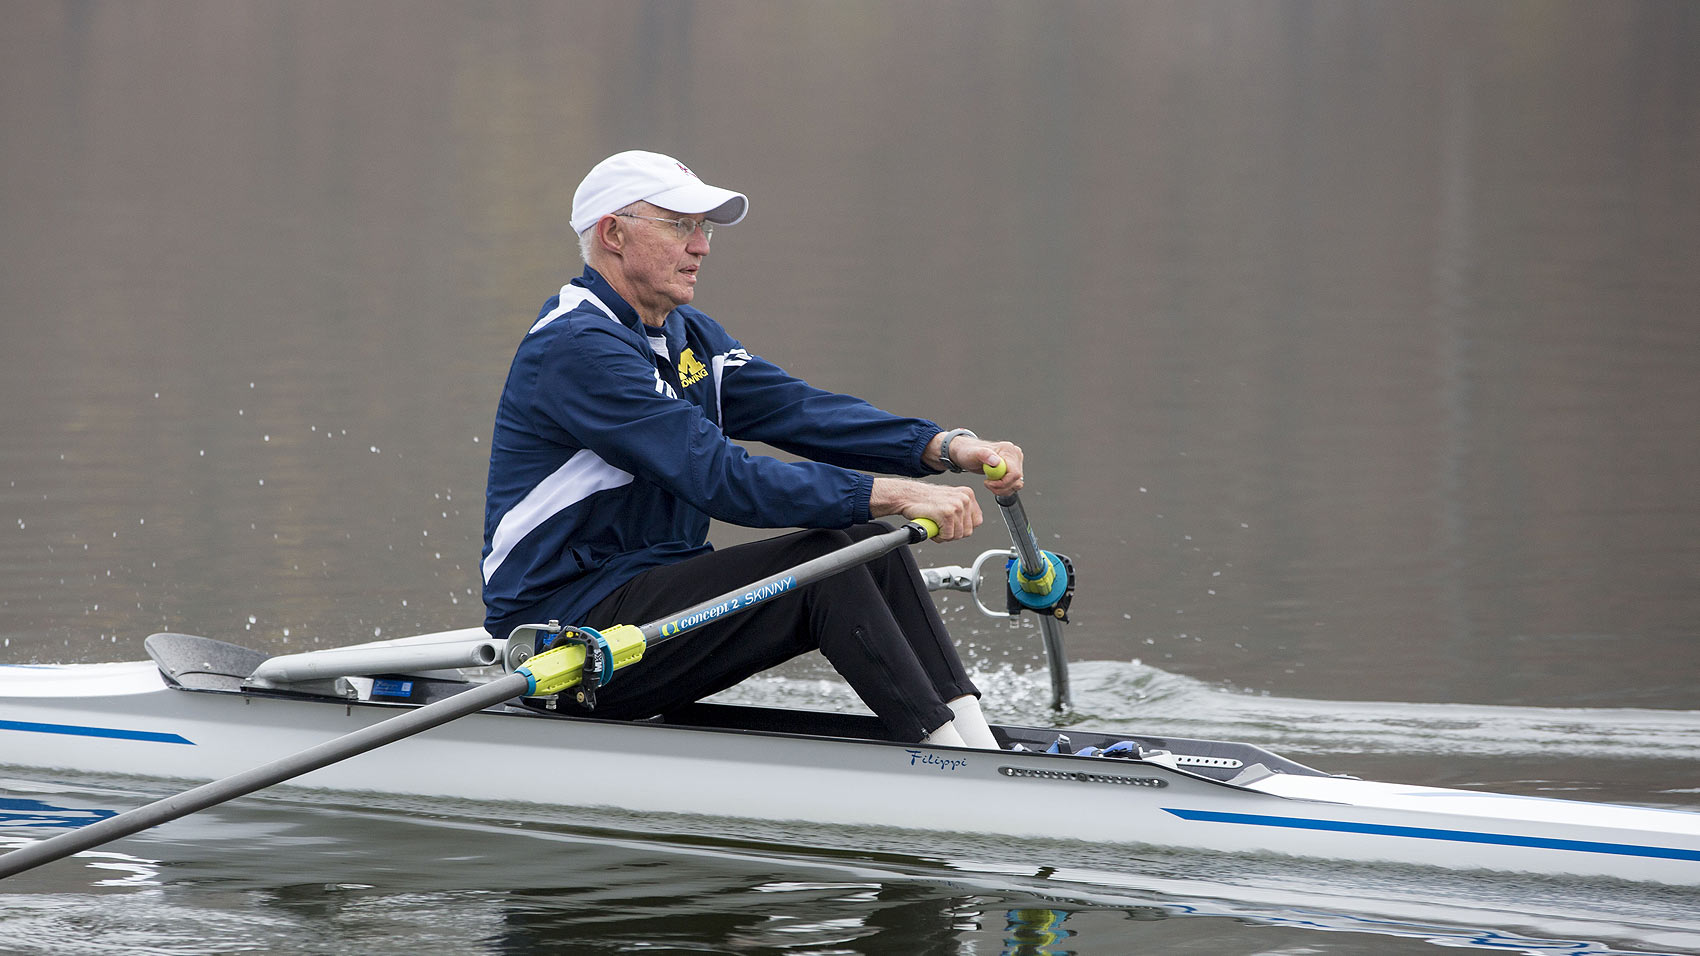 James Montie, M.D rowing after his catheter ablation